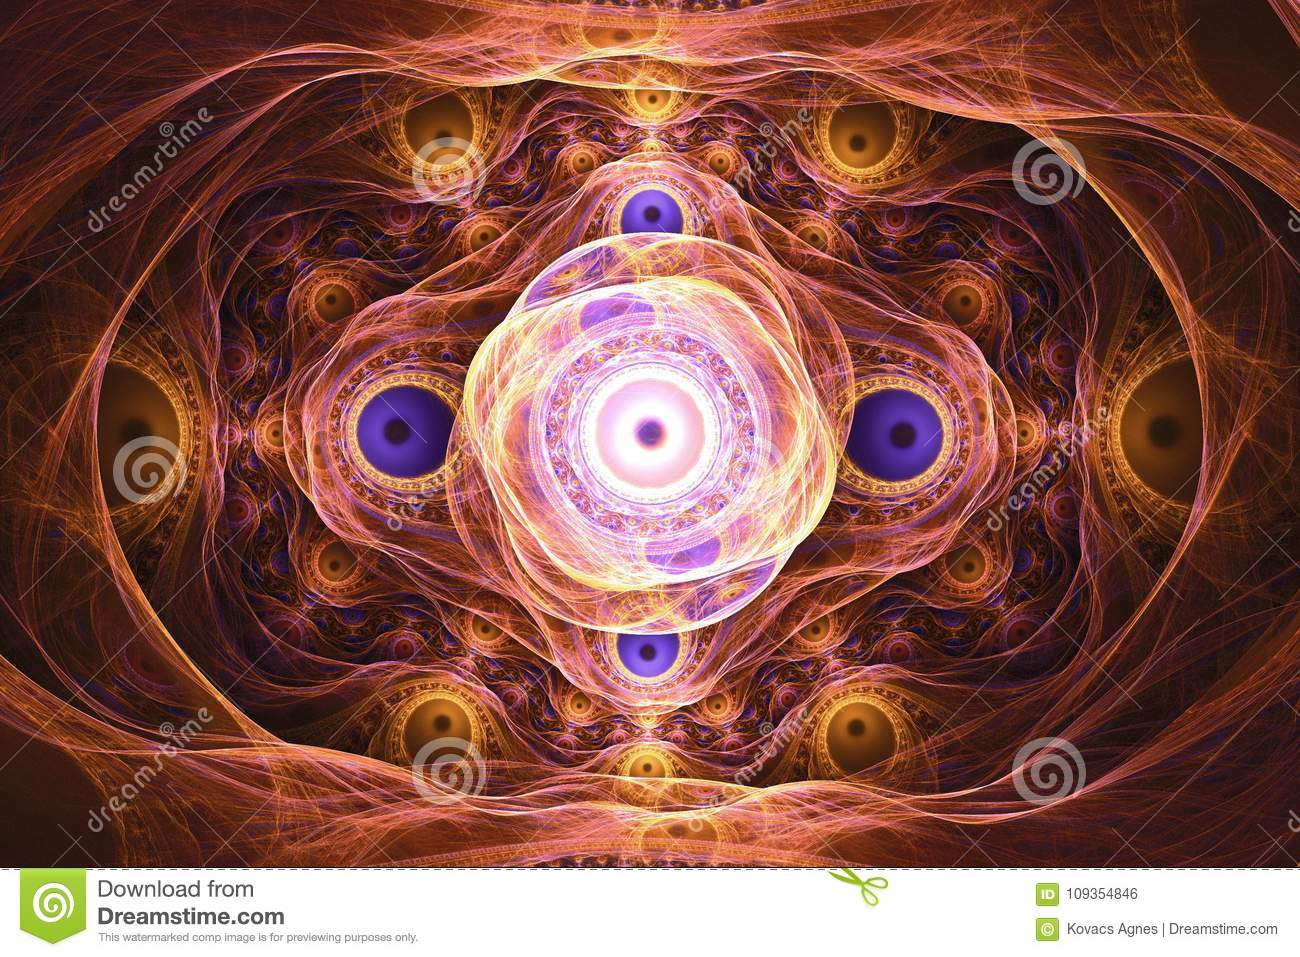 animated fractal frequency space universe galaxy psychedelic music any other concept geometric patterns animated fractal 109354846